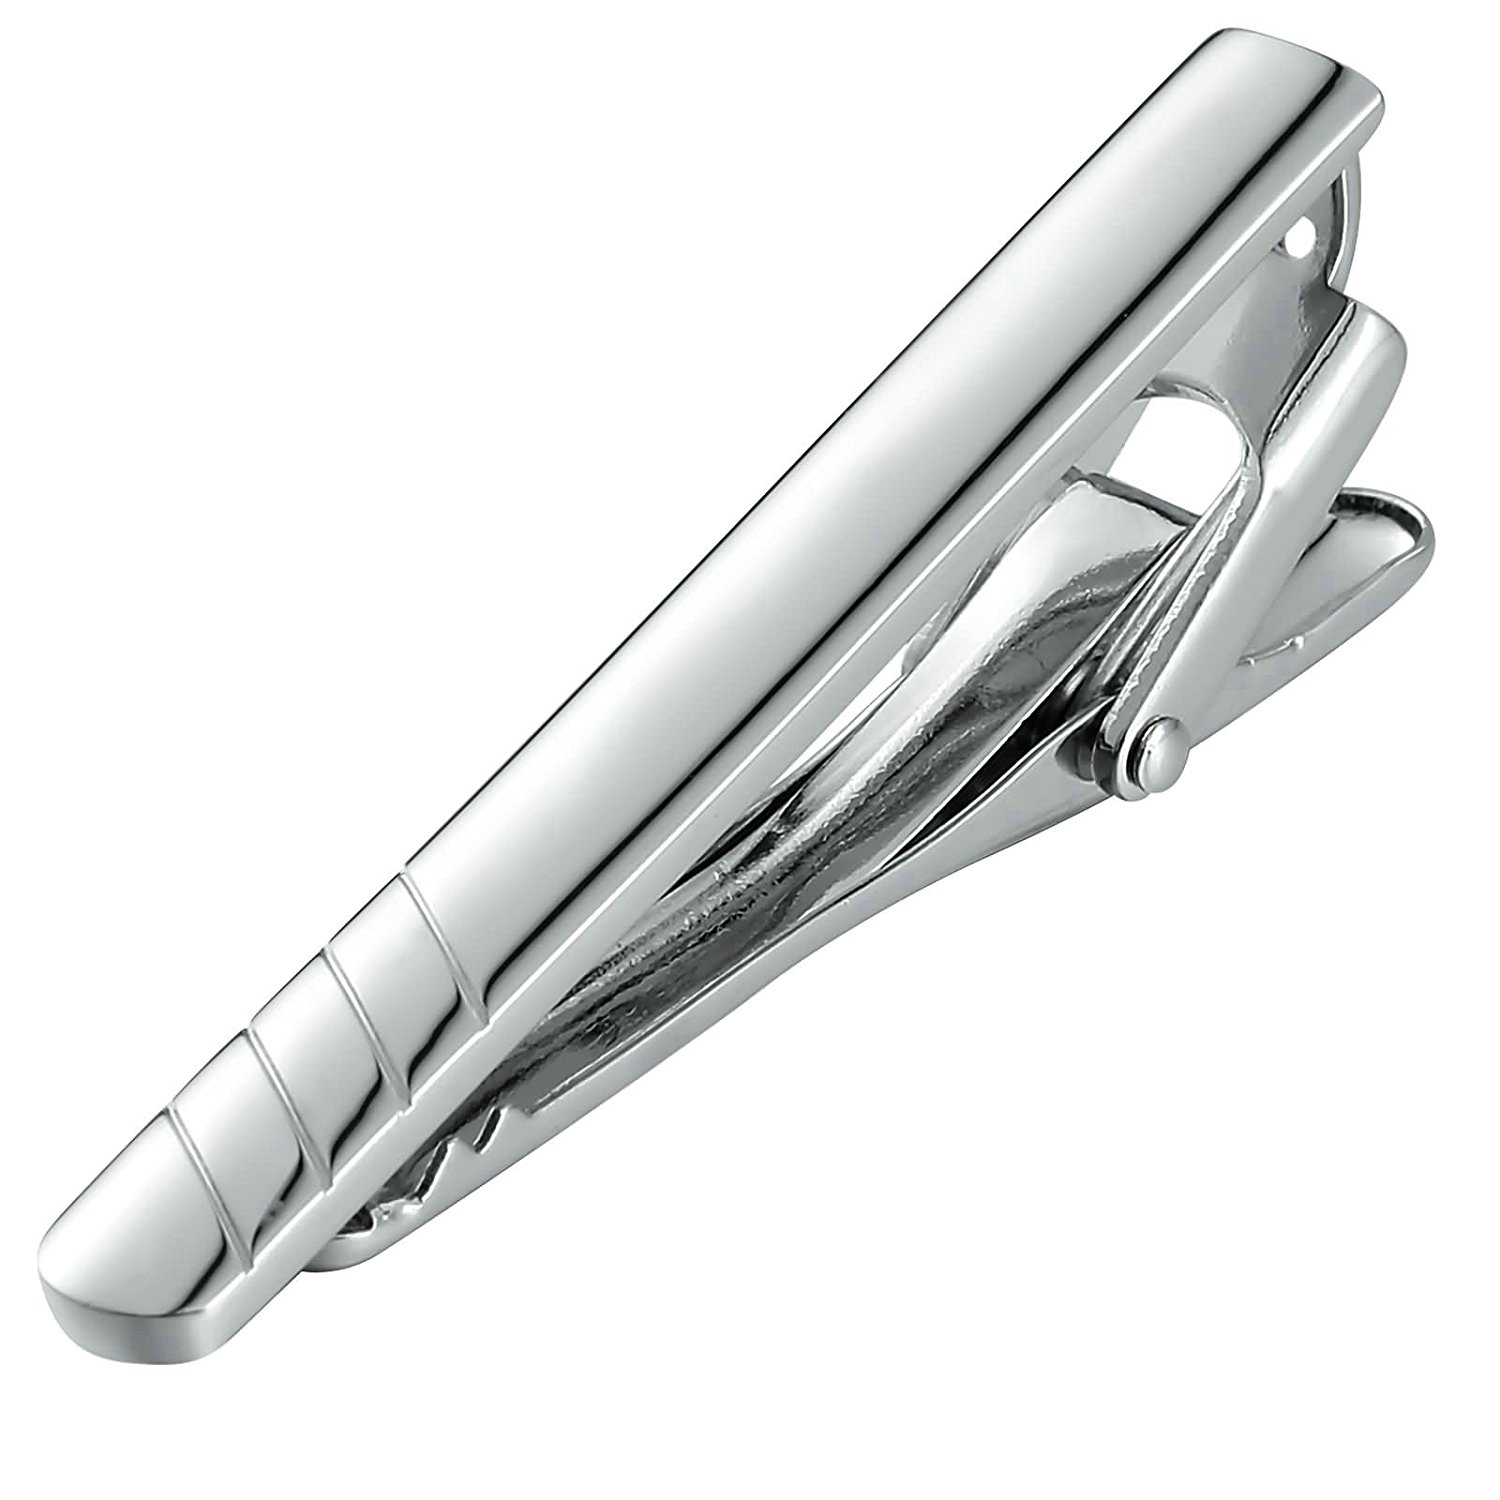 Aooaz Mens Tie Clip Stainless Steel Square Black Silver Tie Pin Promise Shirt Suit Wedding Gift 0.5X5.9CM